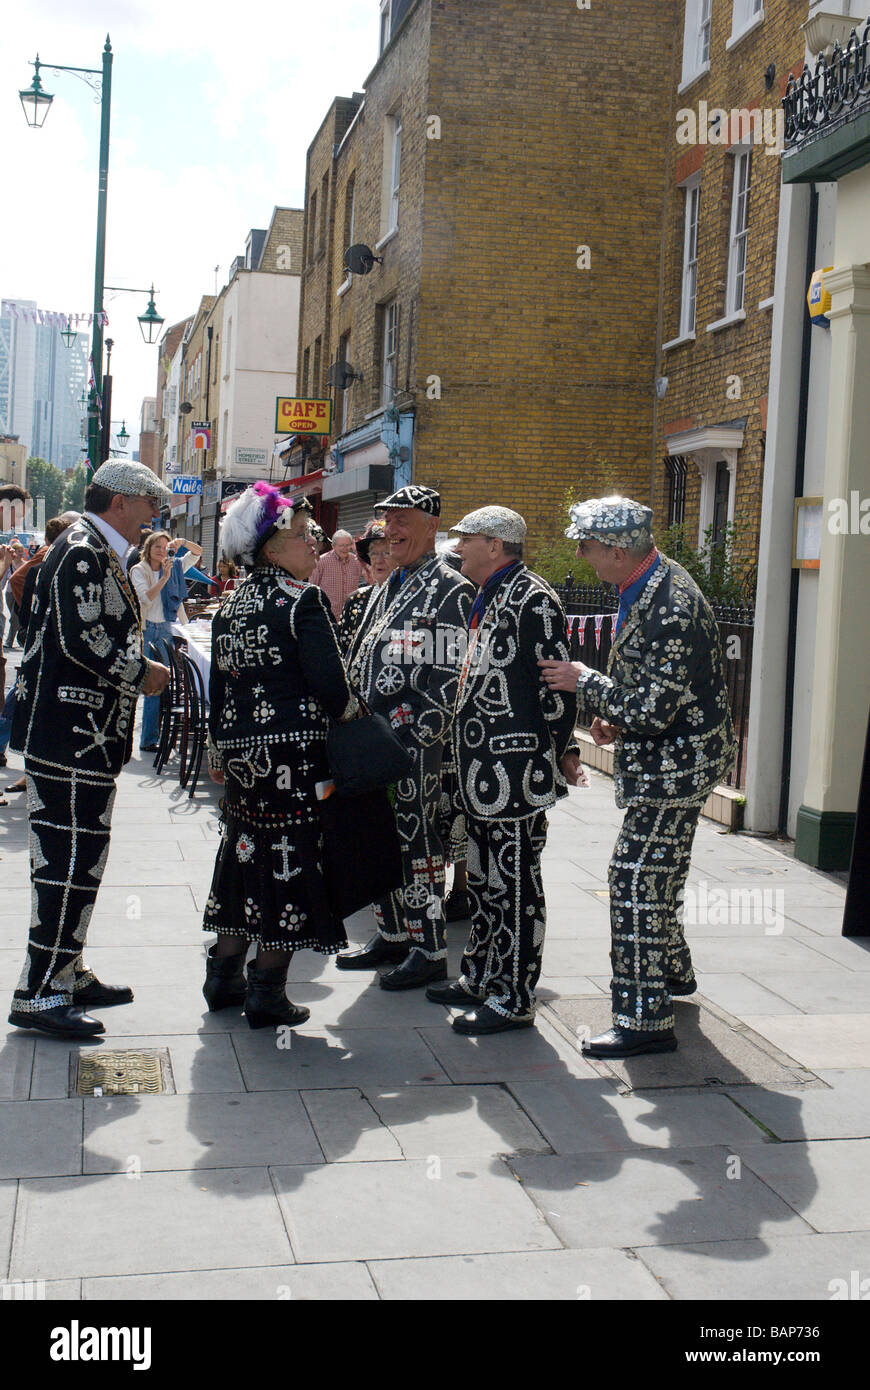 Hoxton Street party to celebrate 1948 Olympics,the day the Olympic flag was handed to London for 2012 games.Pearly - Stock Image